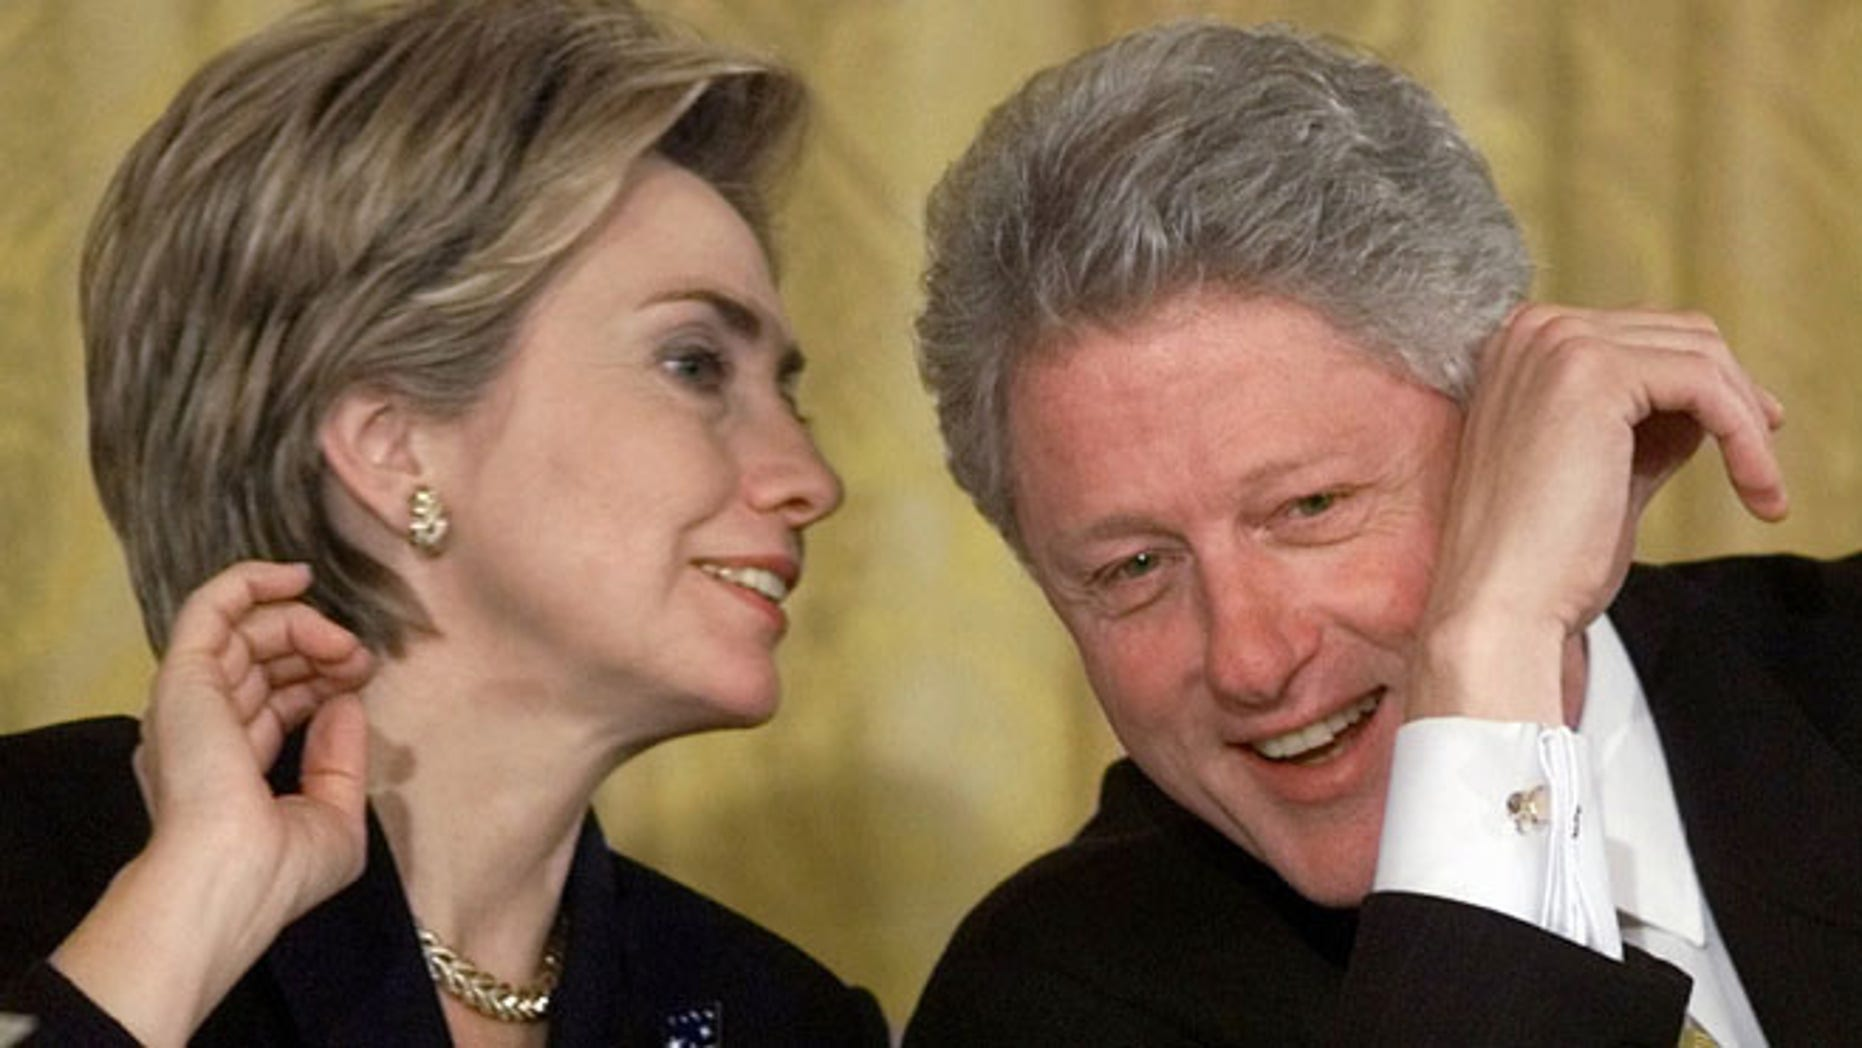 Oct. 22, 1999: President Bill Clinton and first lady Hillary Rodham Clinton talk during the White House Conference on Philanthropy in the East Room of the White House in Washington.